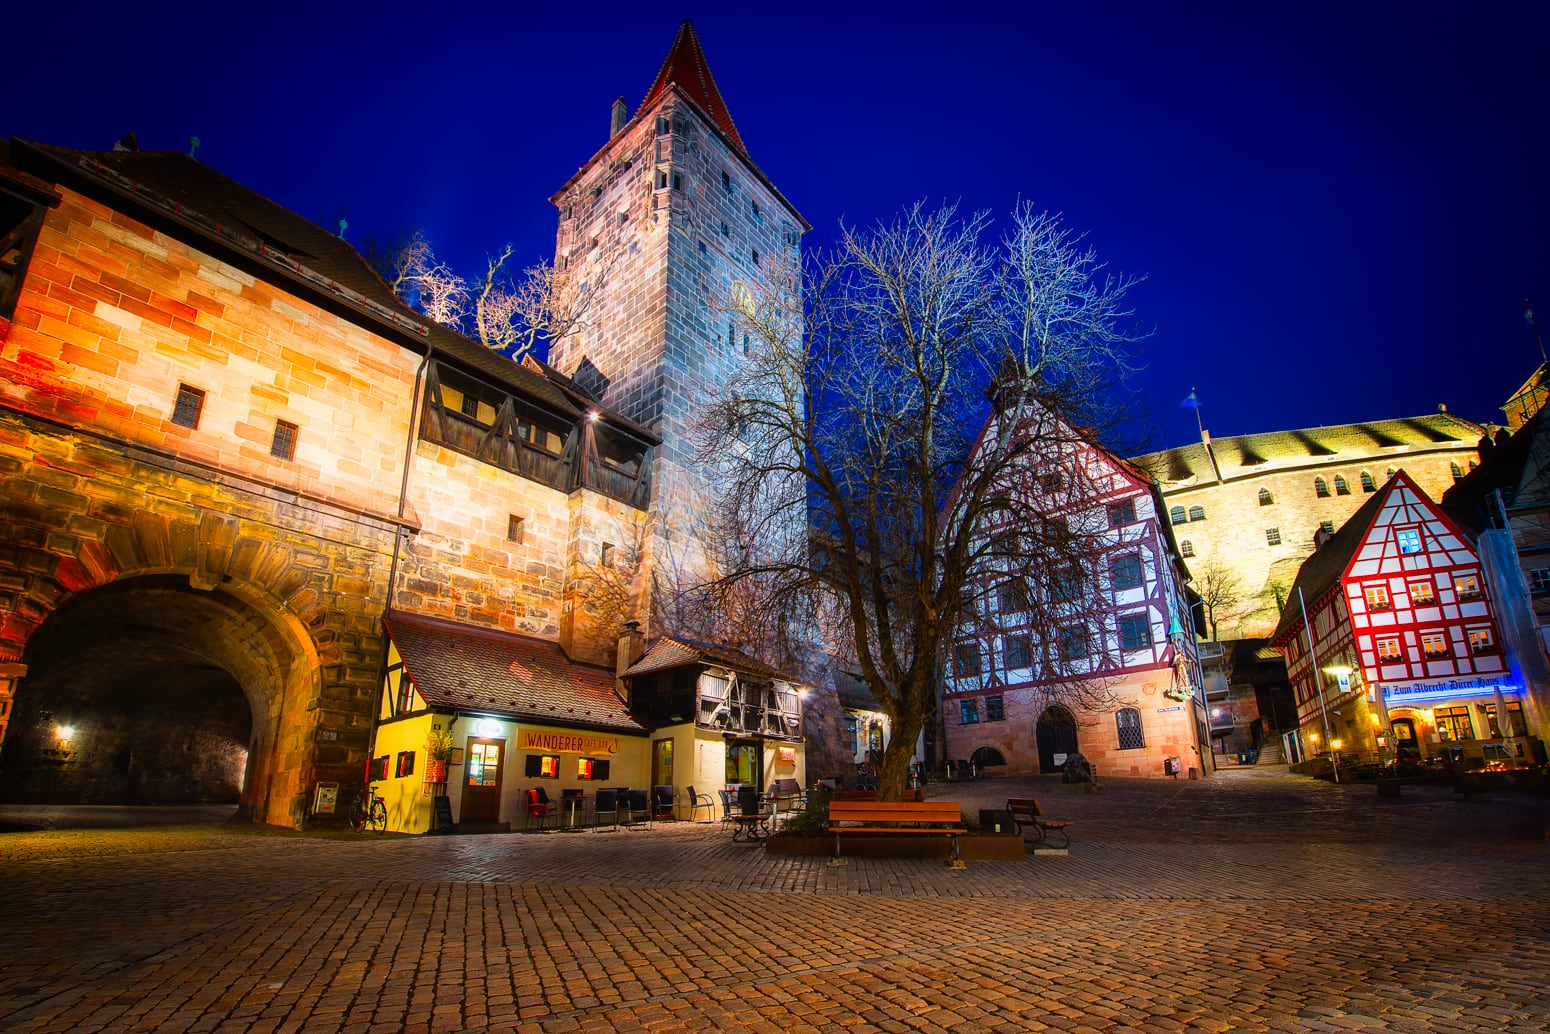 Old City of Nuremberg, Germany with Nuremberg Castle by night.